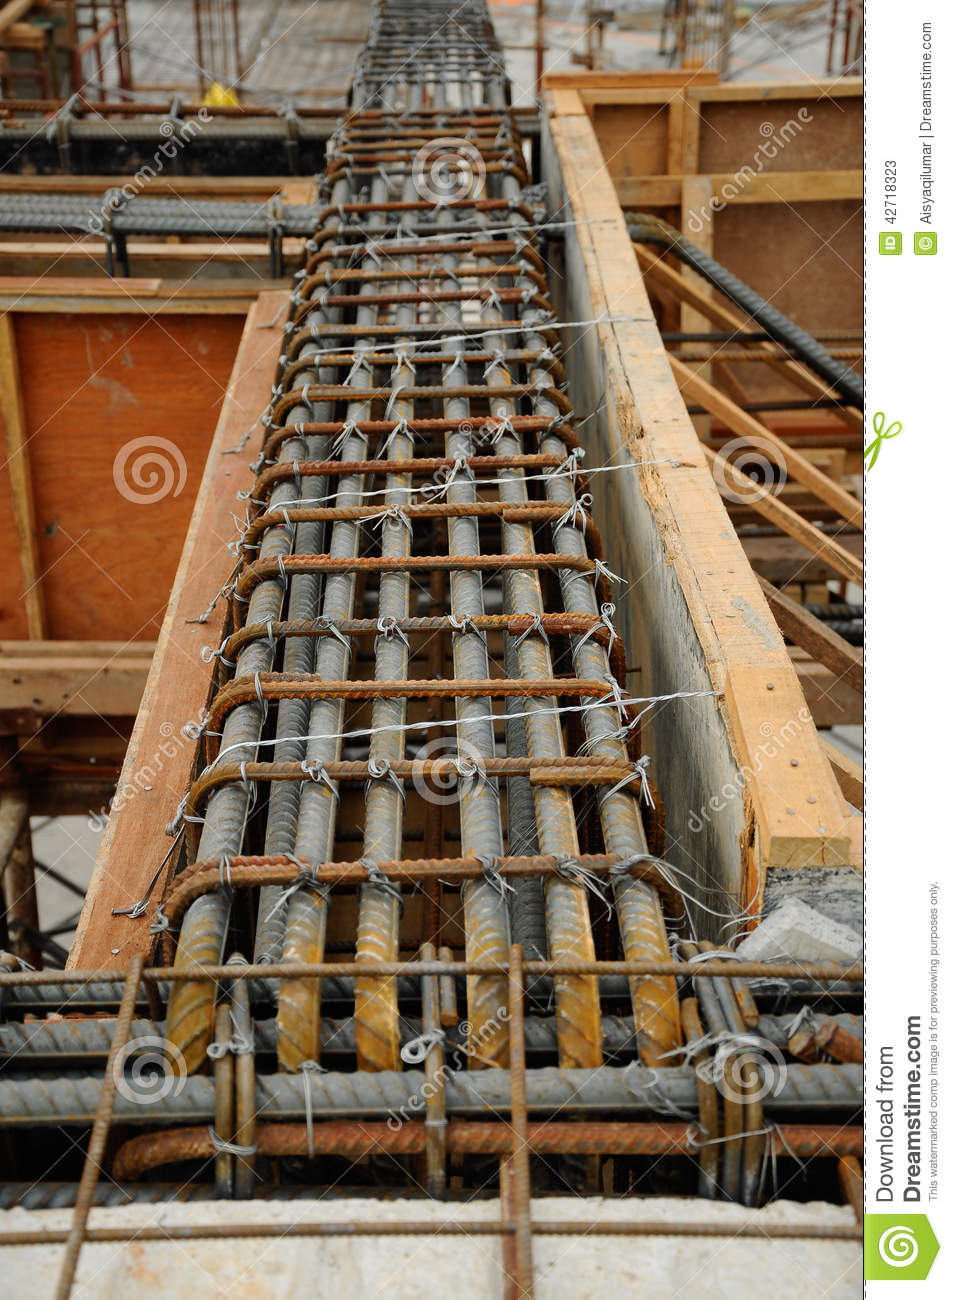 Reinforced Concrete Beam : Beams reinforcement bar and timber formwork stock image